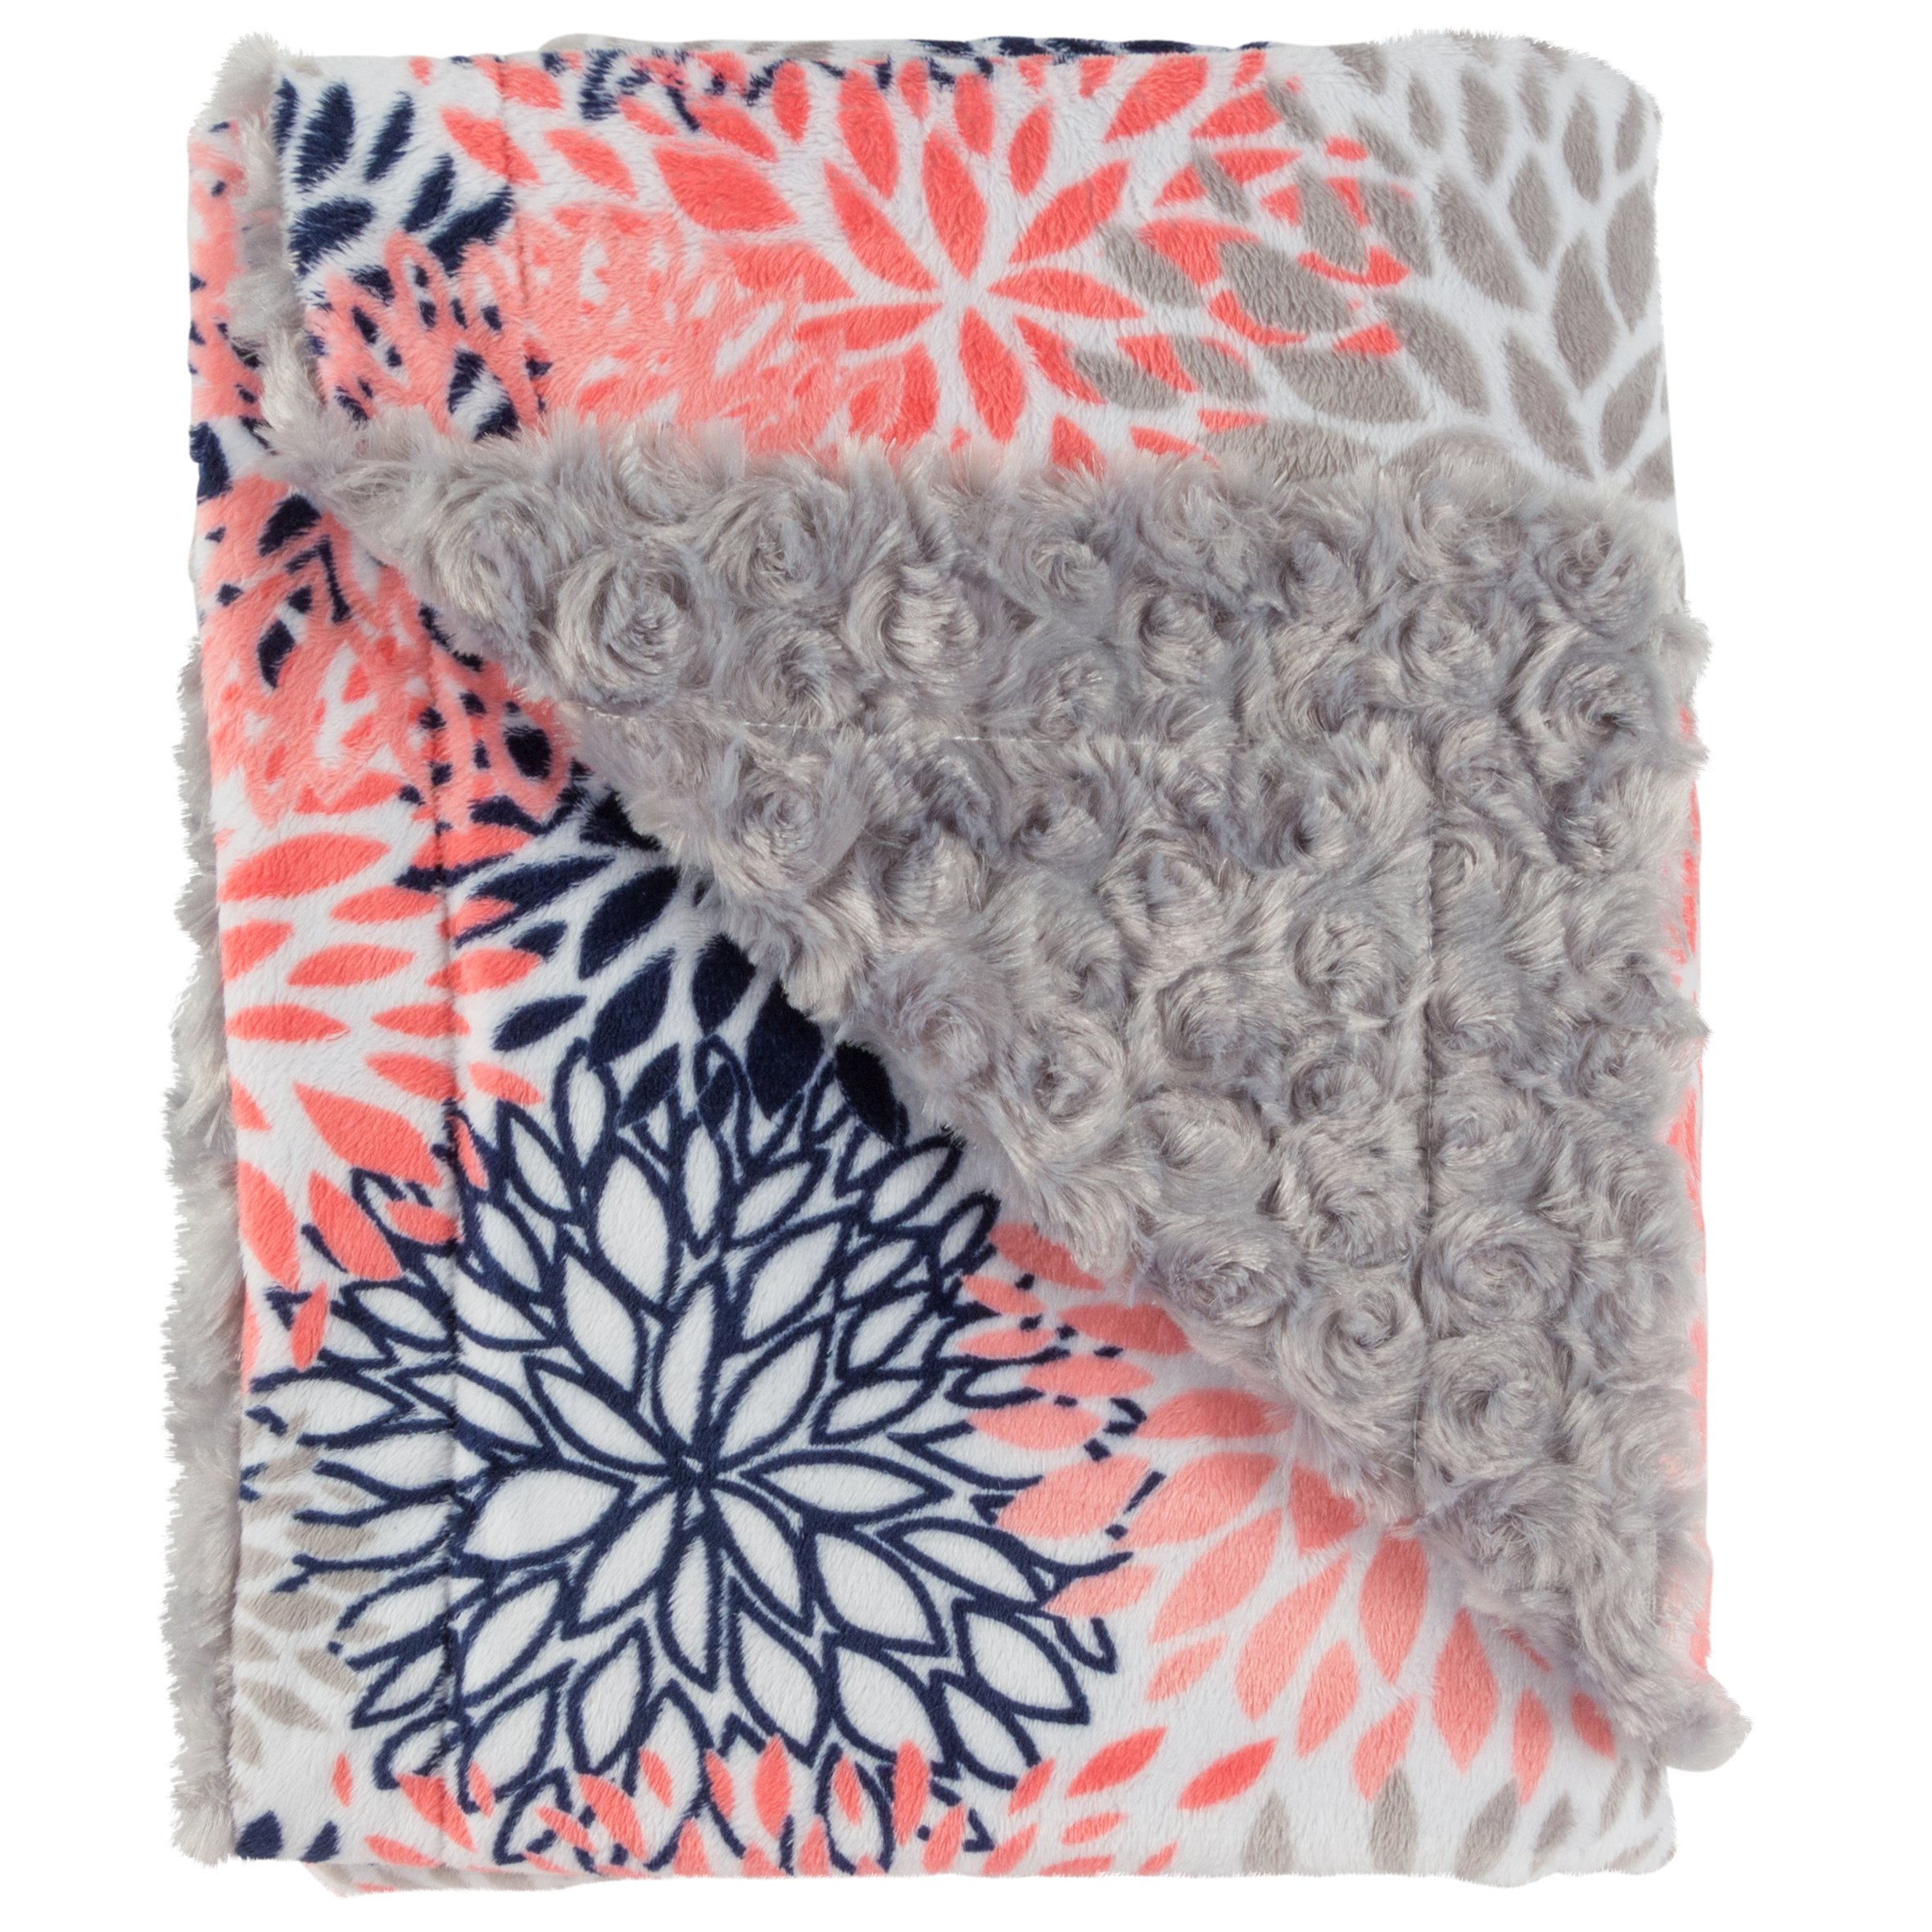 Ultra Soft Plush Baby Receiving Blanket - Luscious, Luxurious and Cuddly Minky Reversible Blankie - Multicolor Baby Bloom - 30'' x 36'' - by Posh Designs by Posh Designs